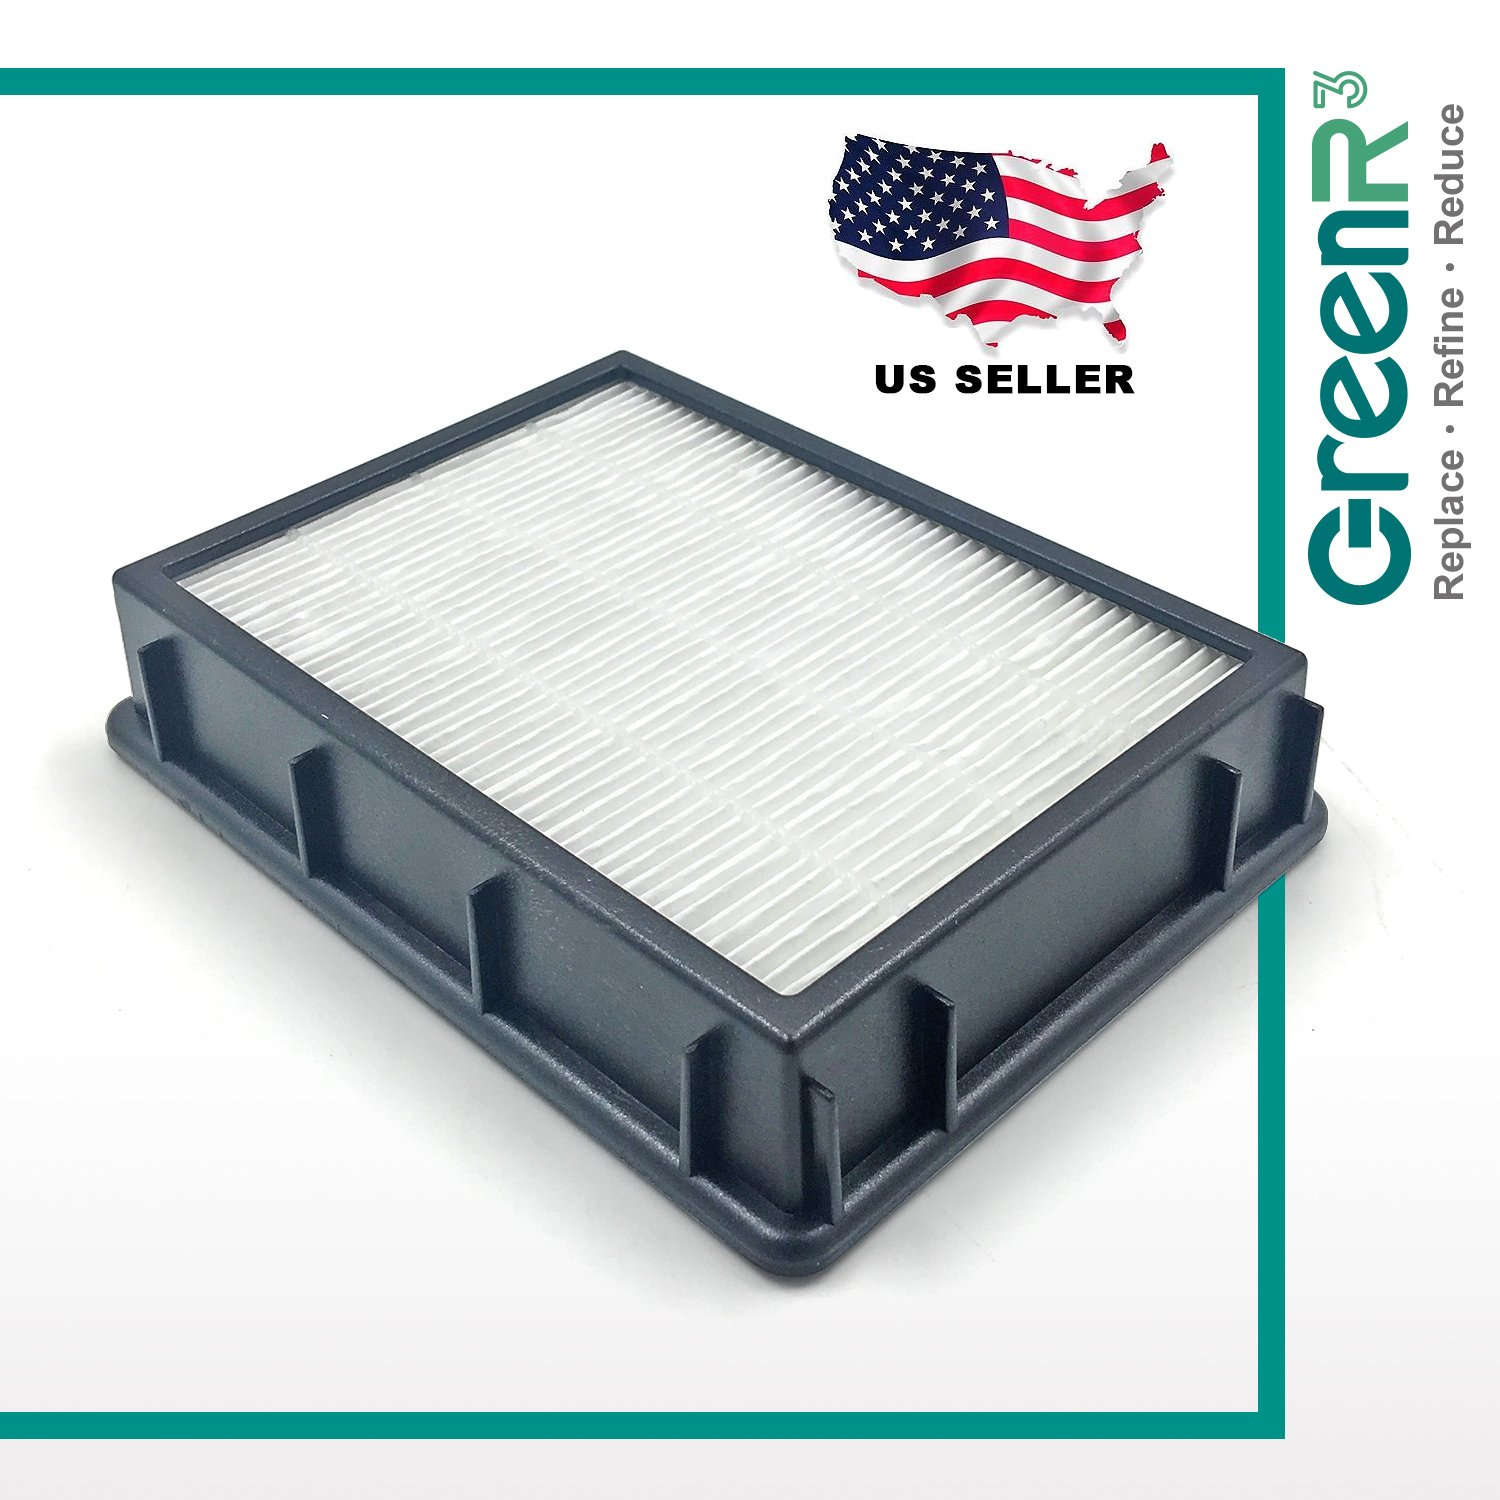 GreenR3 1-PACK Air Filter FOR Eureka HF-2 fits 61111 61495 Ultra SmartVac 4800 series 4870 4875 4872 4874 Upright HF2 Part Model PN Replenishment Replacement and more Compatible